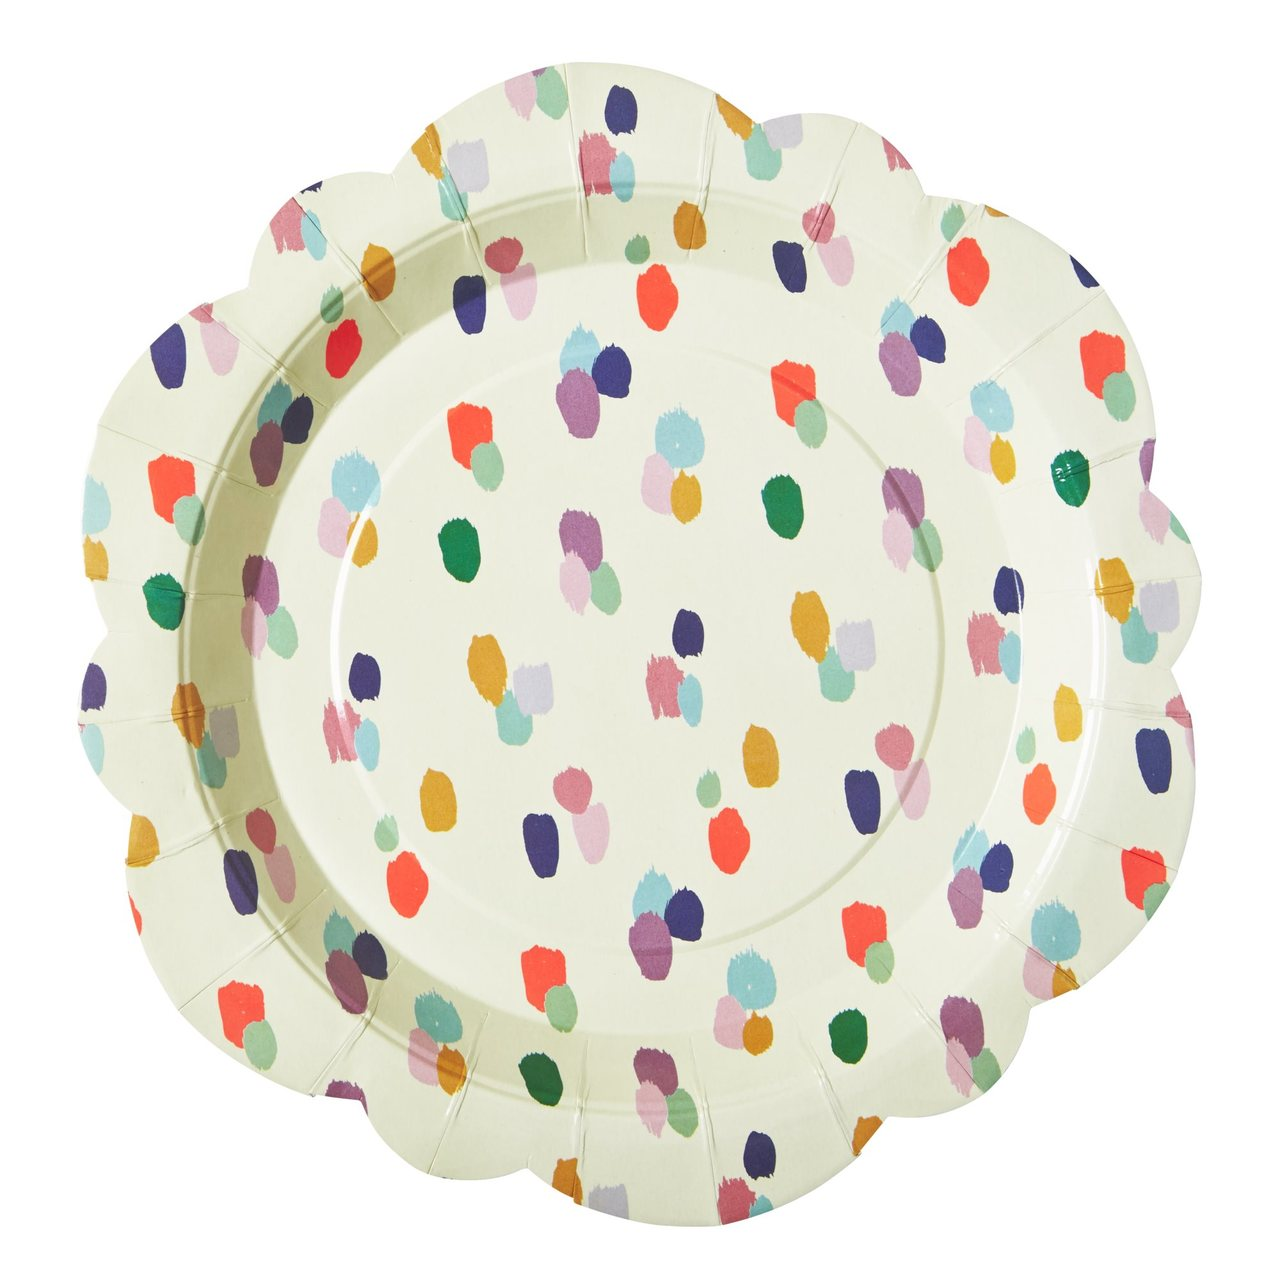 8 Flower shaped paper plates in Dapper Dot print